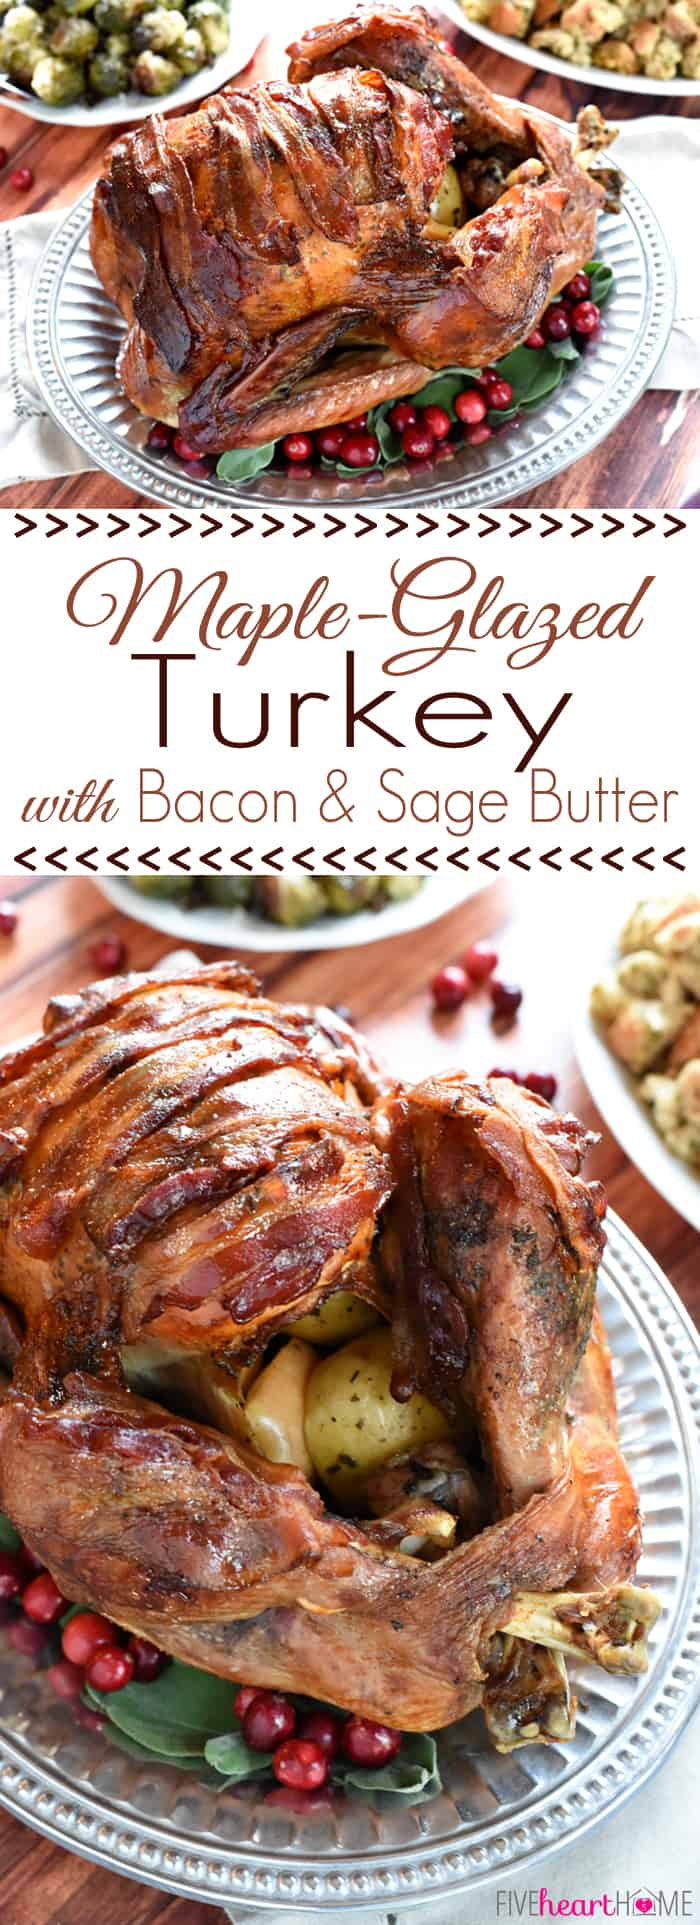 Maple-Glazed Turkey with Bacon and Sage Butter ~ tender, juicy, and shingled with bacon, this is the BEST Thanksgiving turkey recipe you'll ever try! | FiveHeartHome.com via @fivehearthome